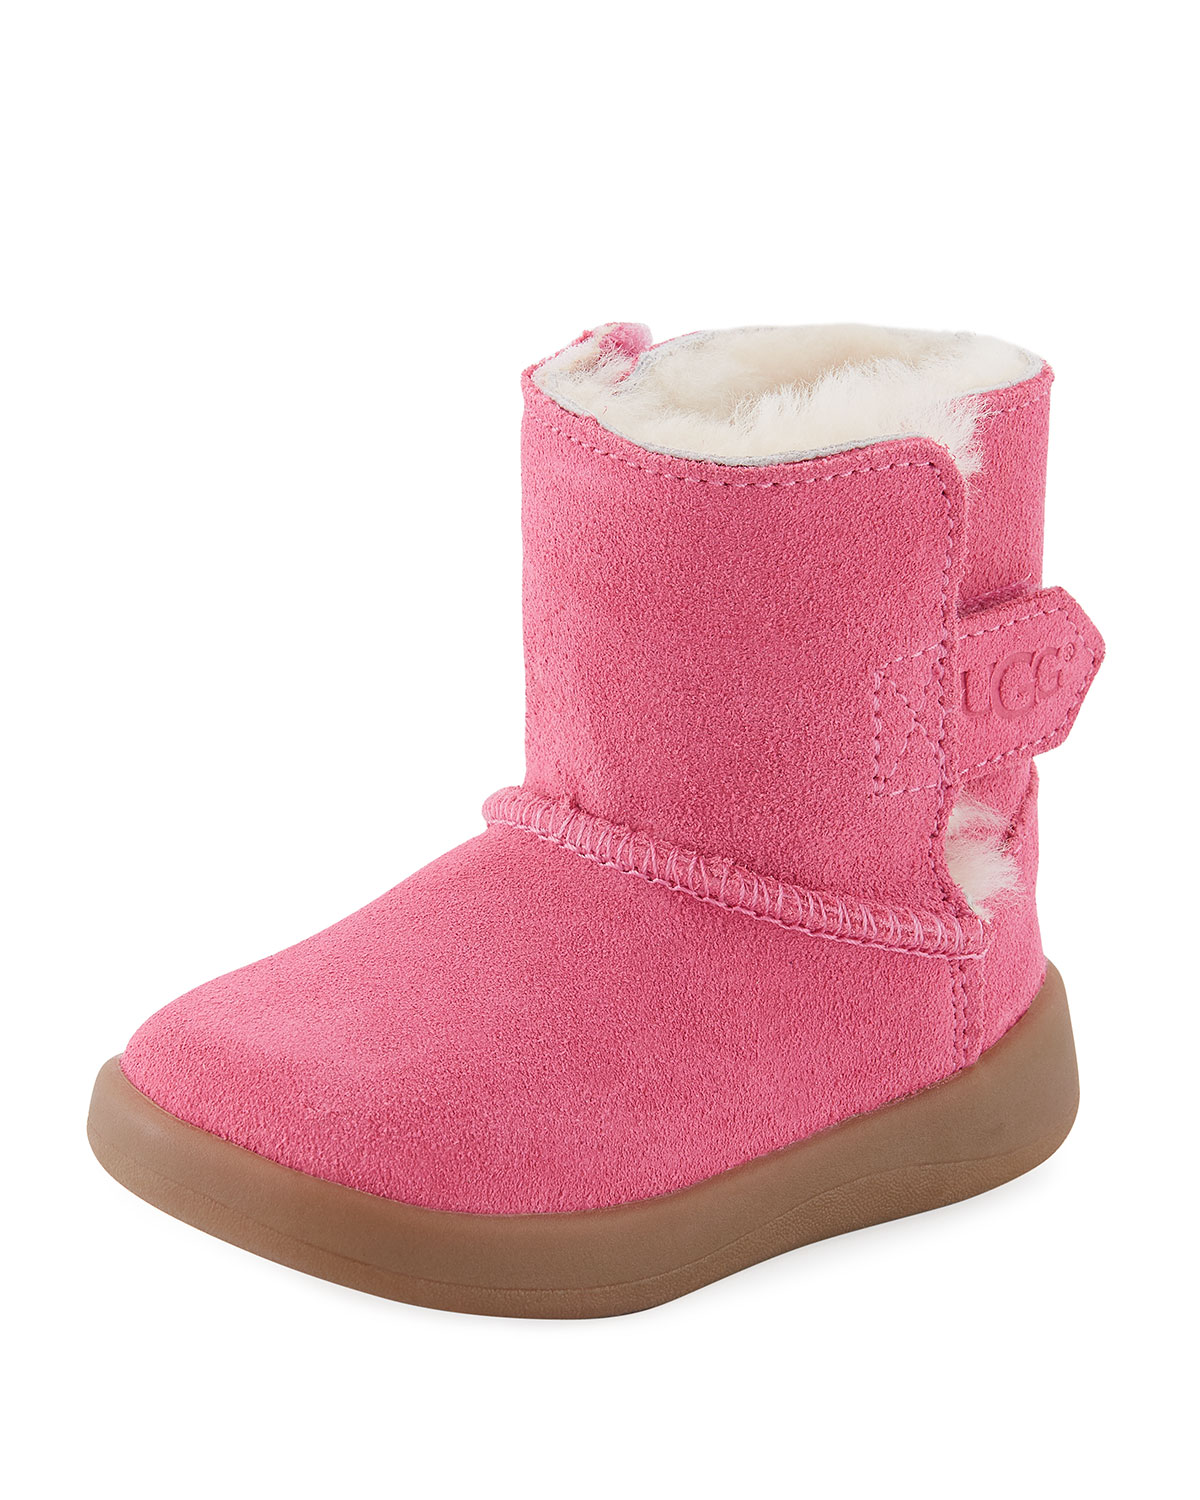 a2078d440be Keelan Suede Bootie, Infant Sizes 0-12 Months